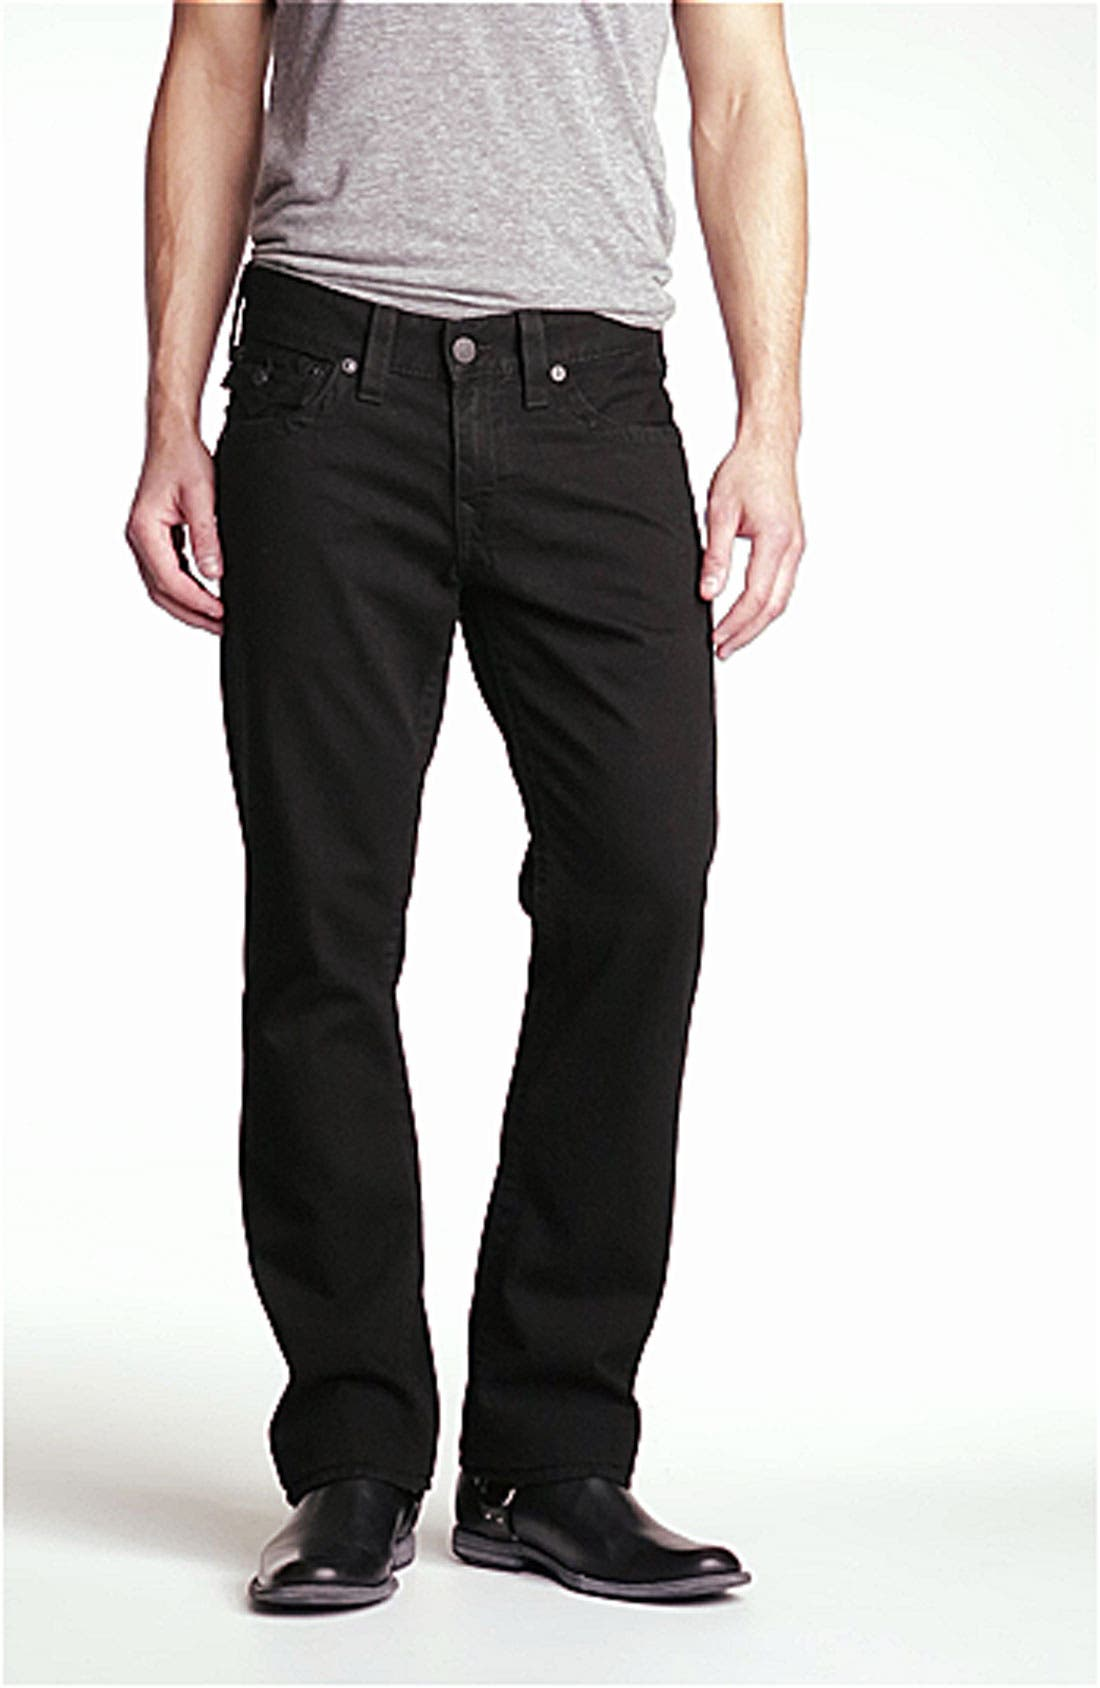 'Ricky' Relaxed Fit Jeans,                             Alternate thumbnail 13, color,